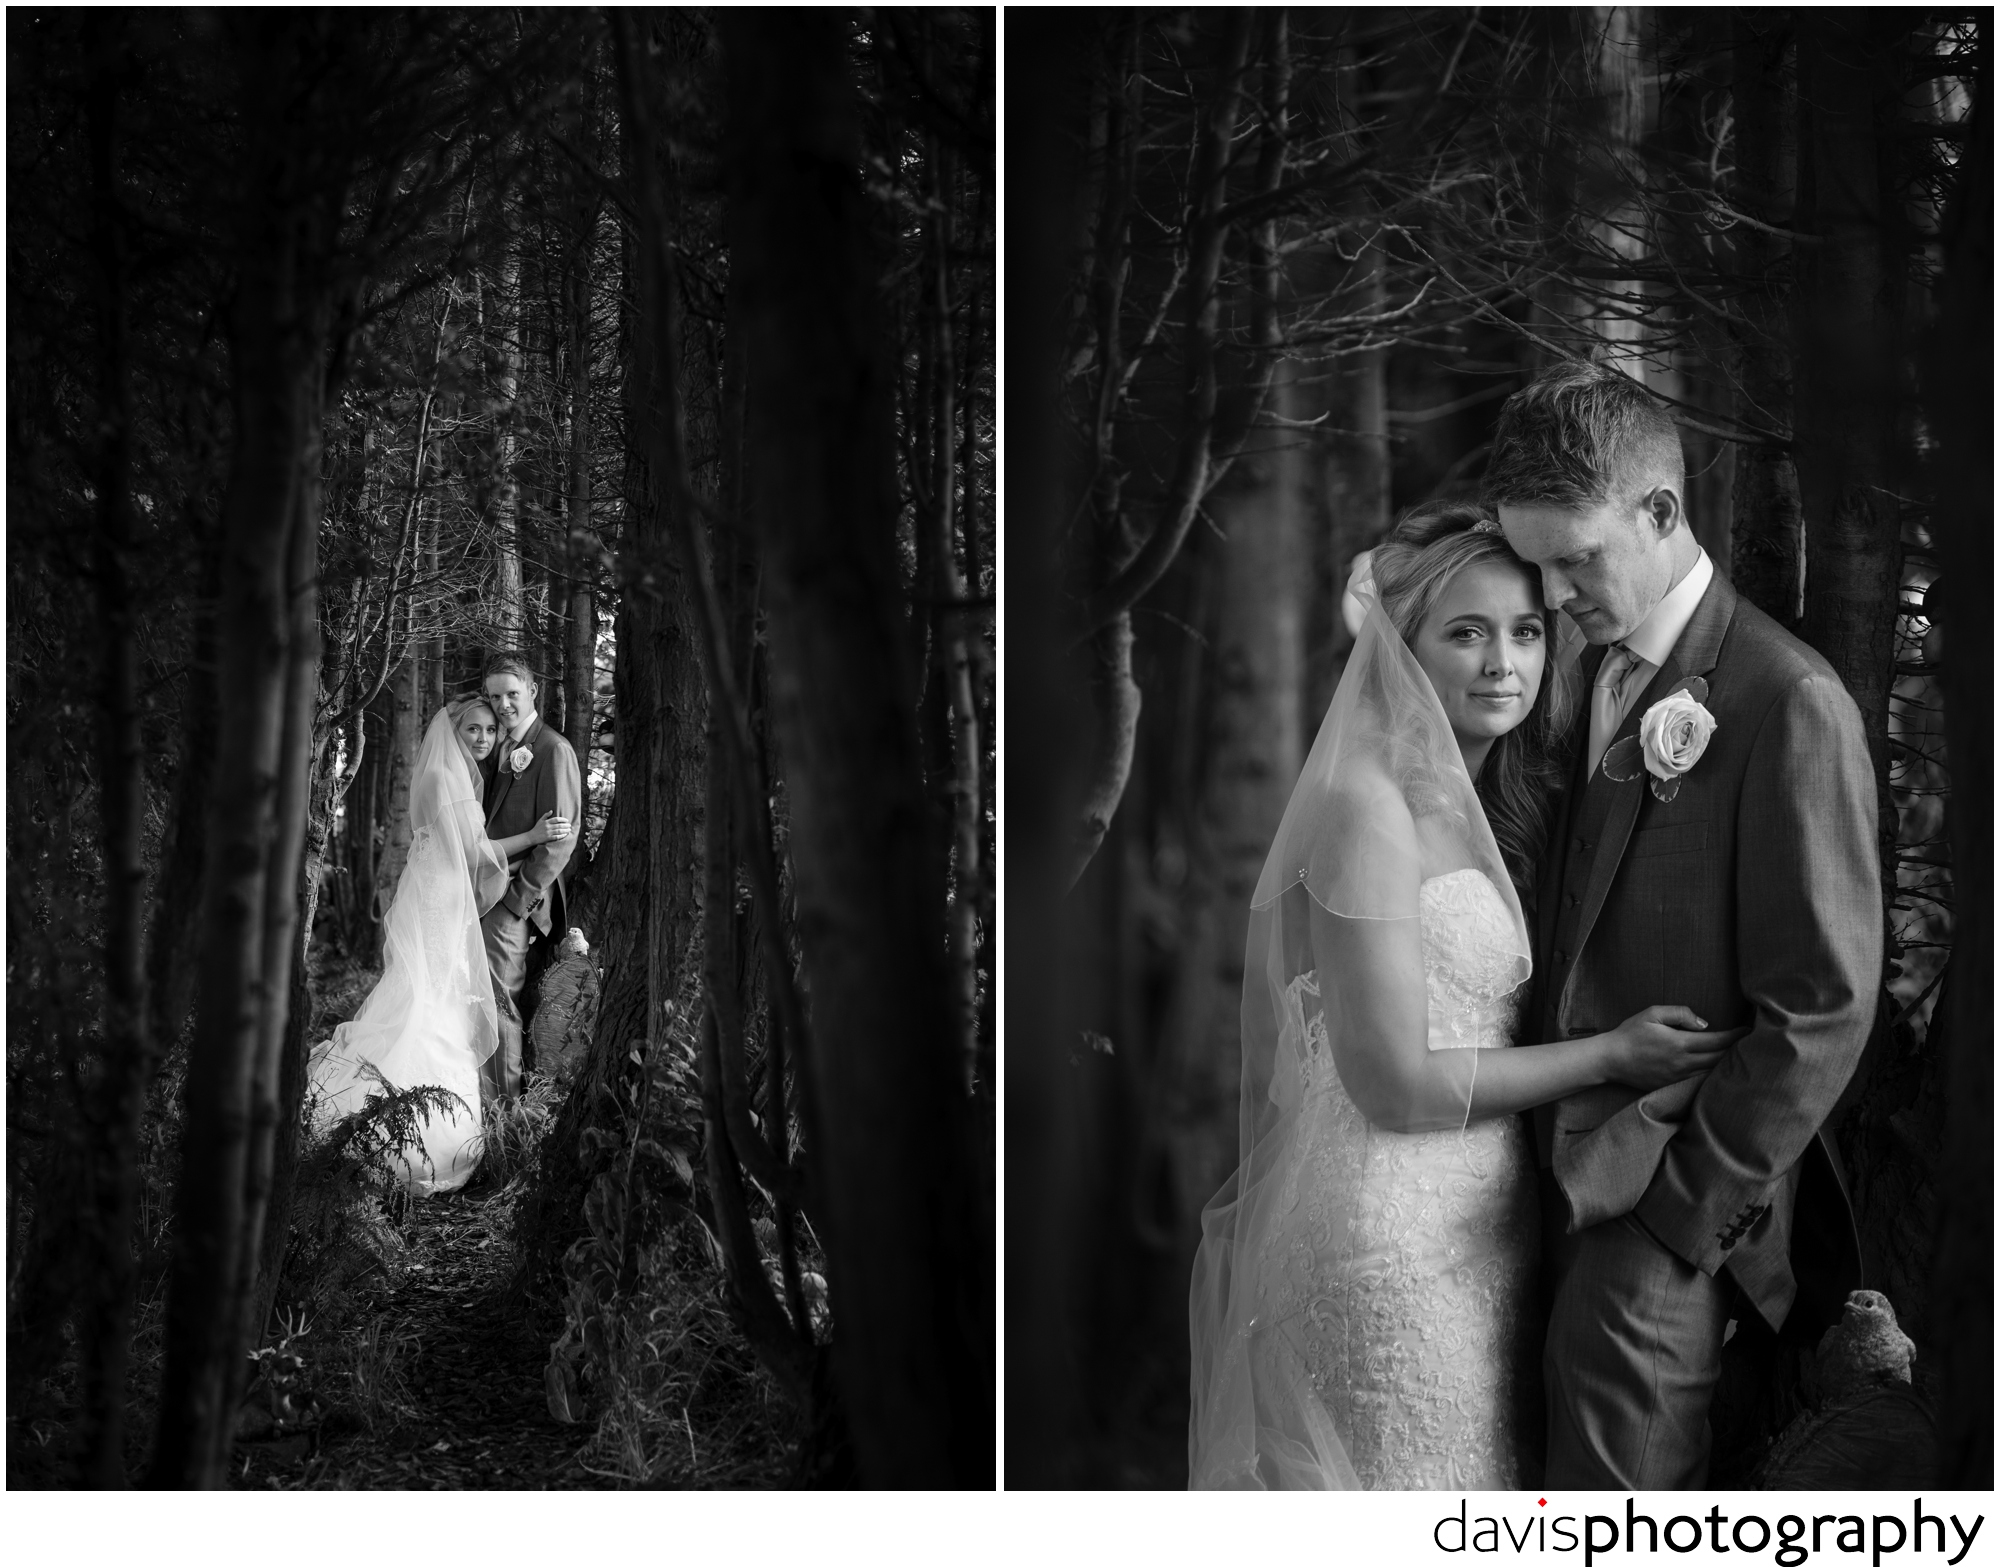 tunnel of trees surround couple